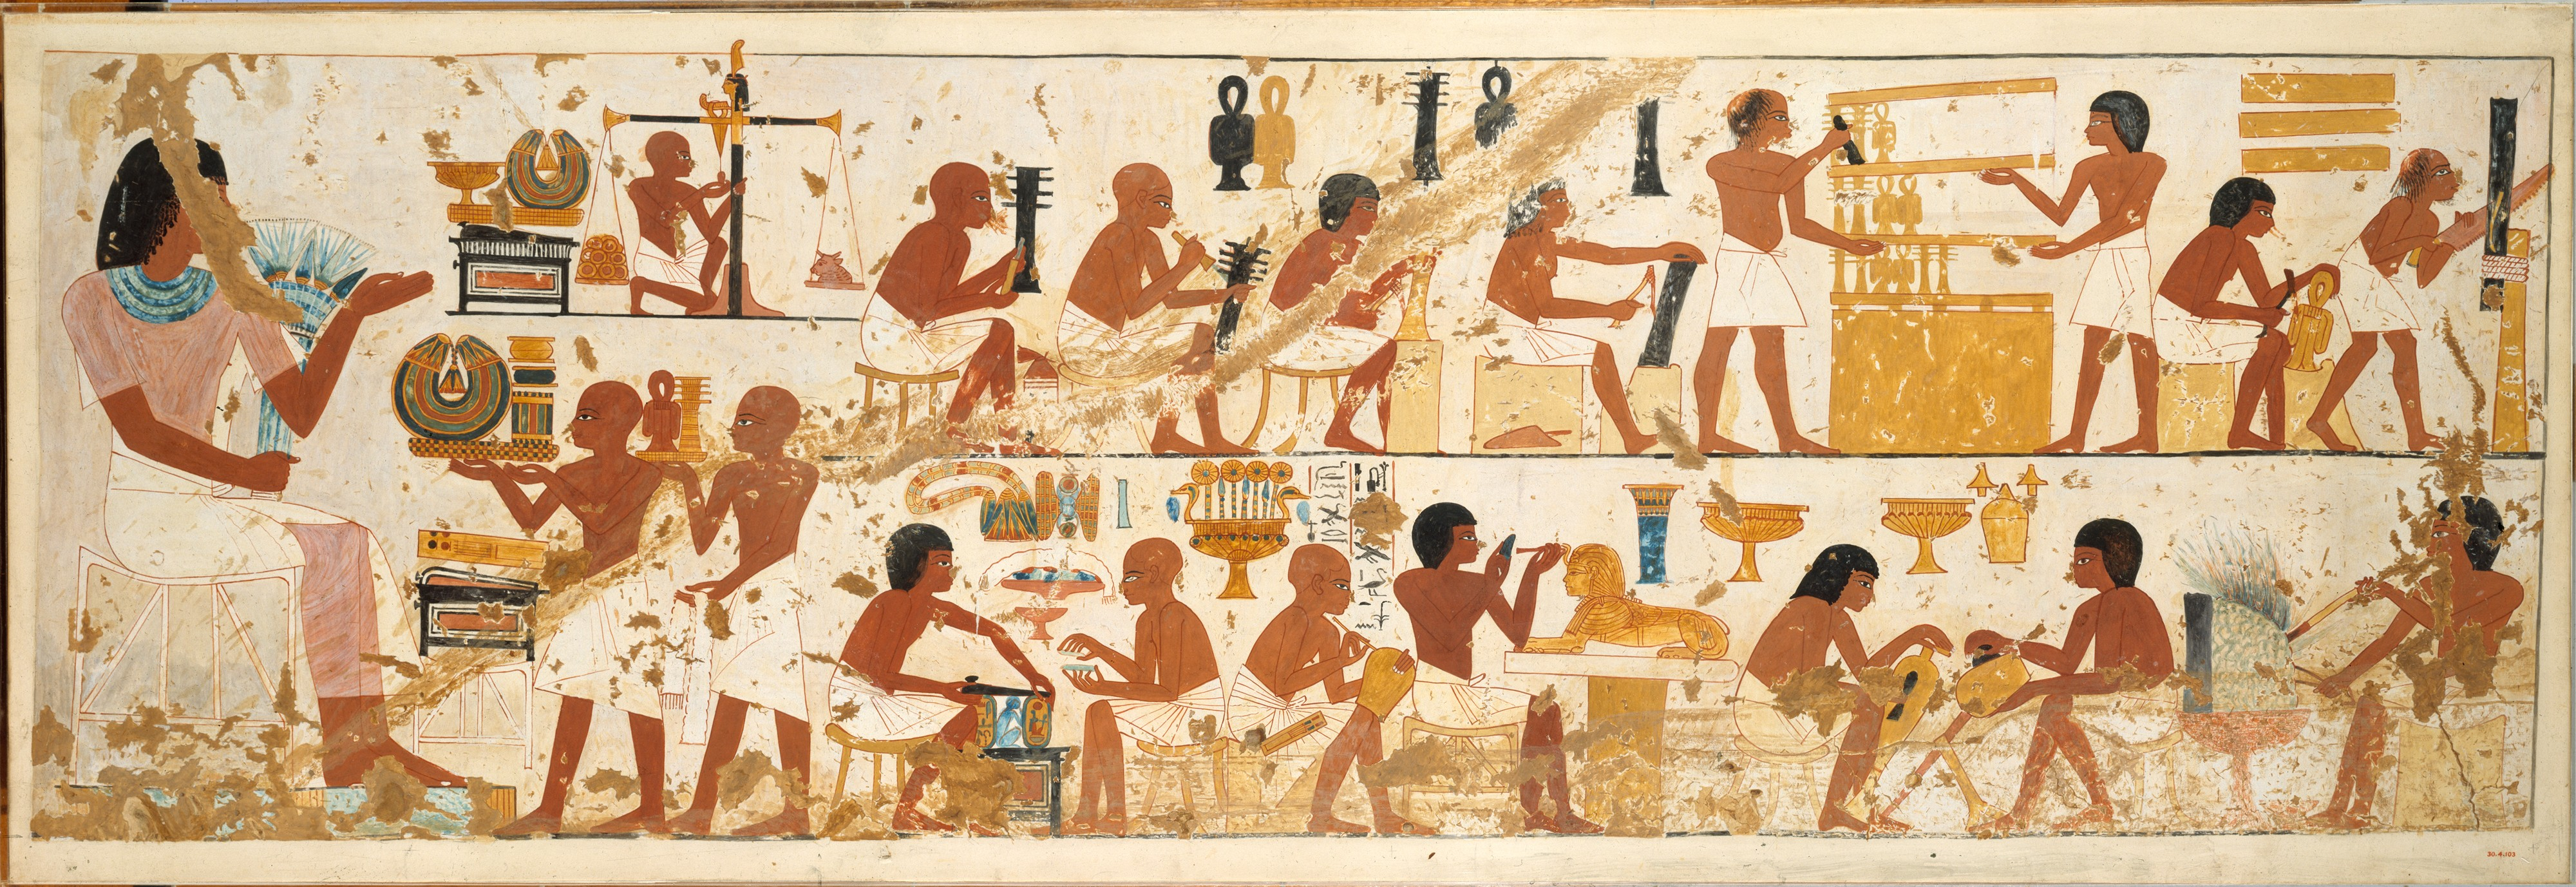 Colour photograph of a painting of lots of Ancient Egyptians doing different kinds of building work.